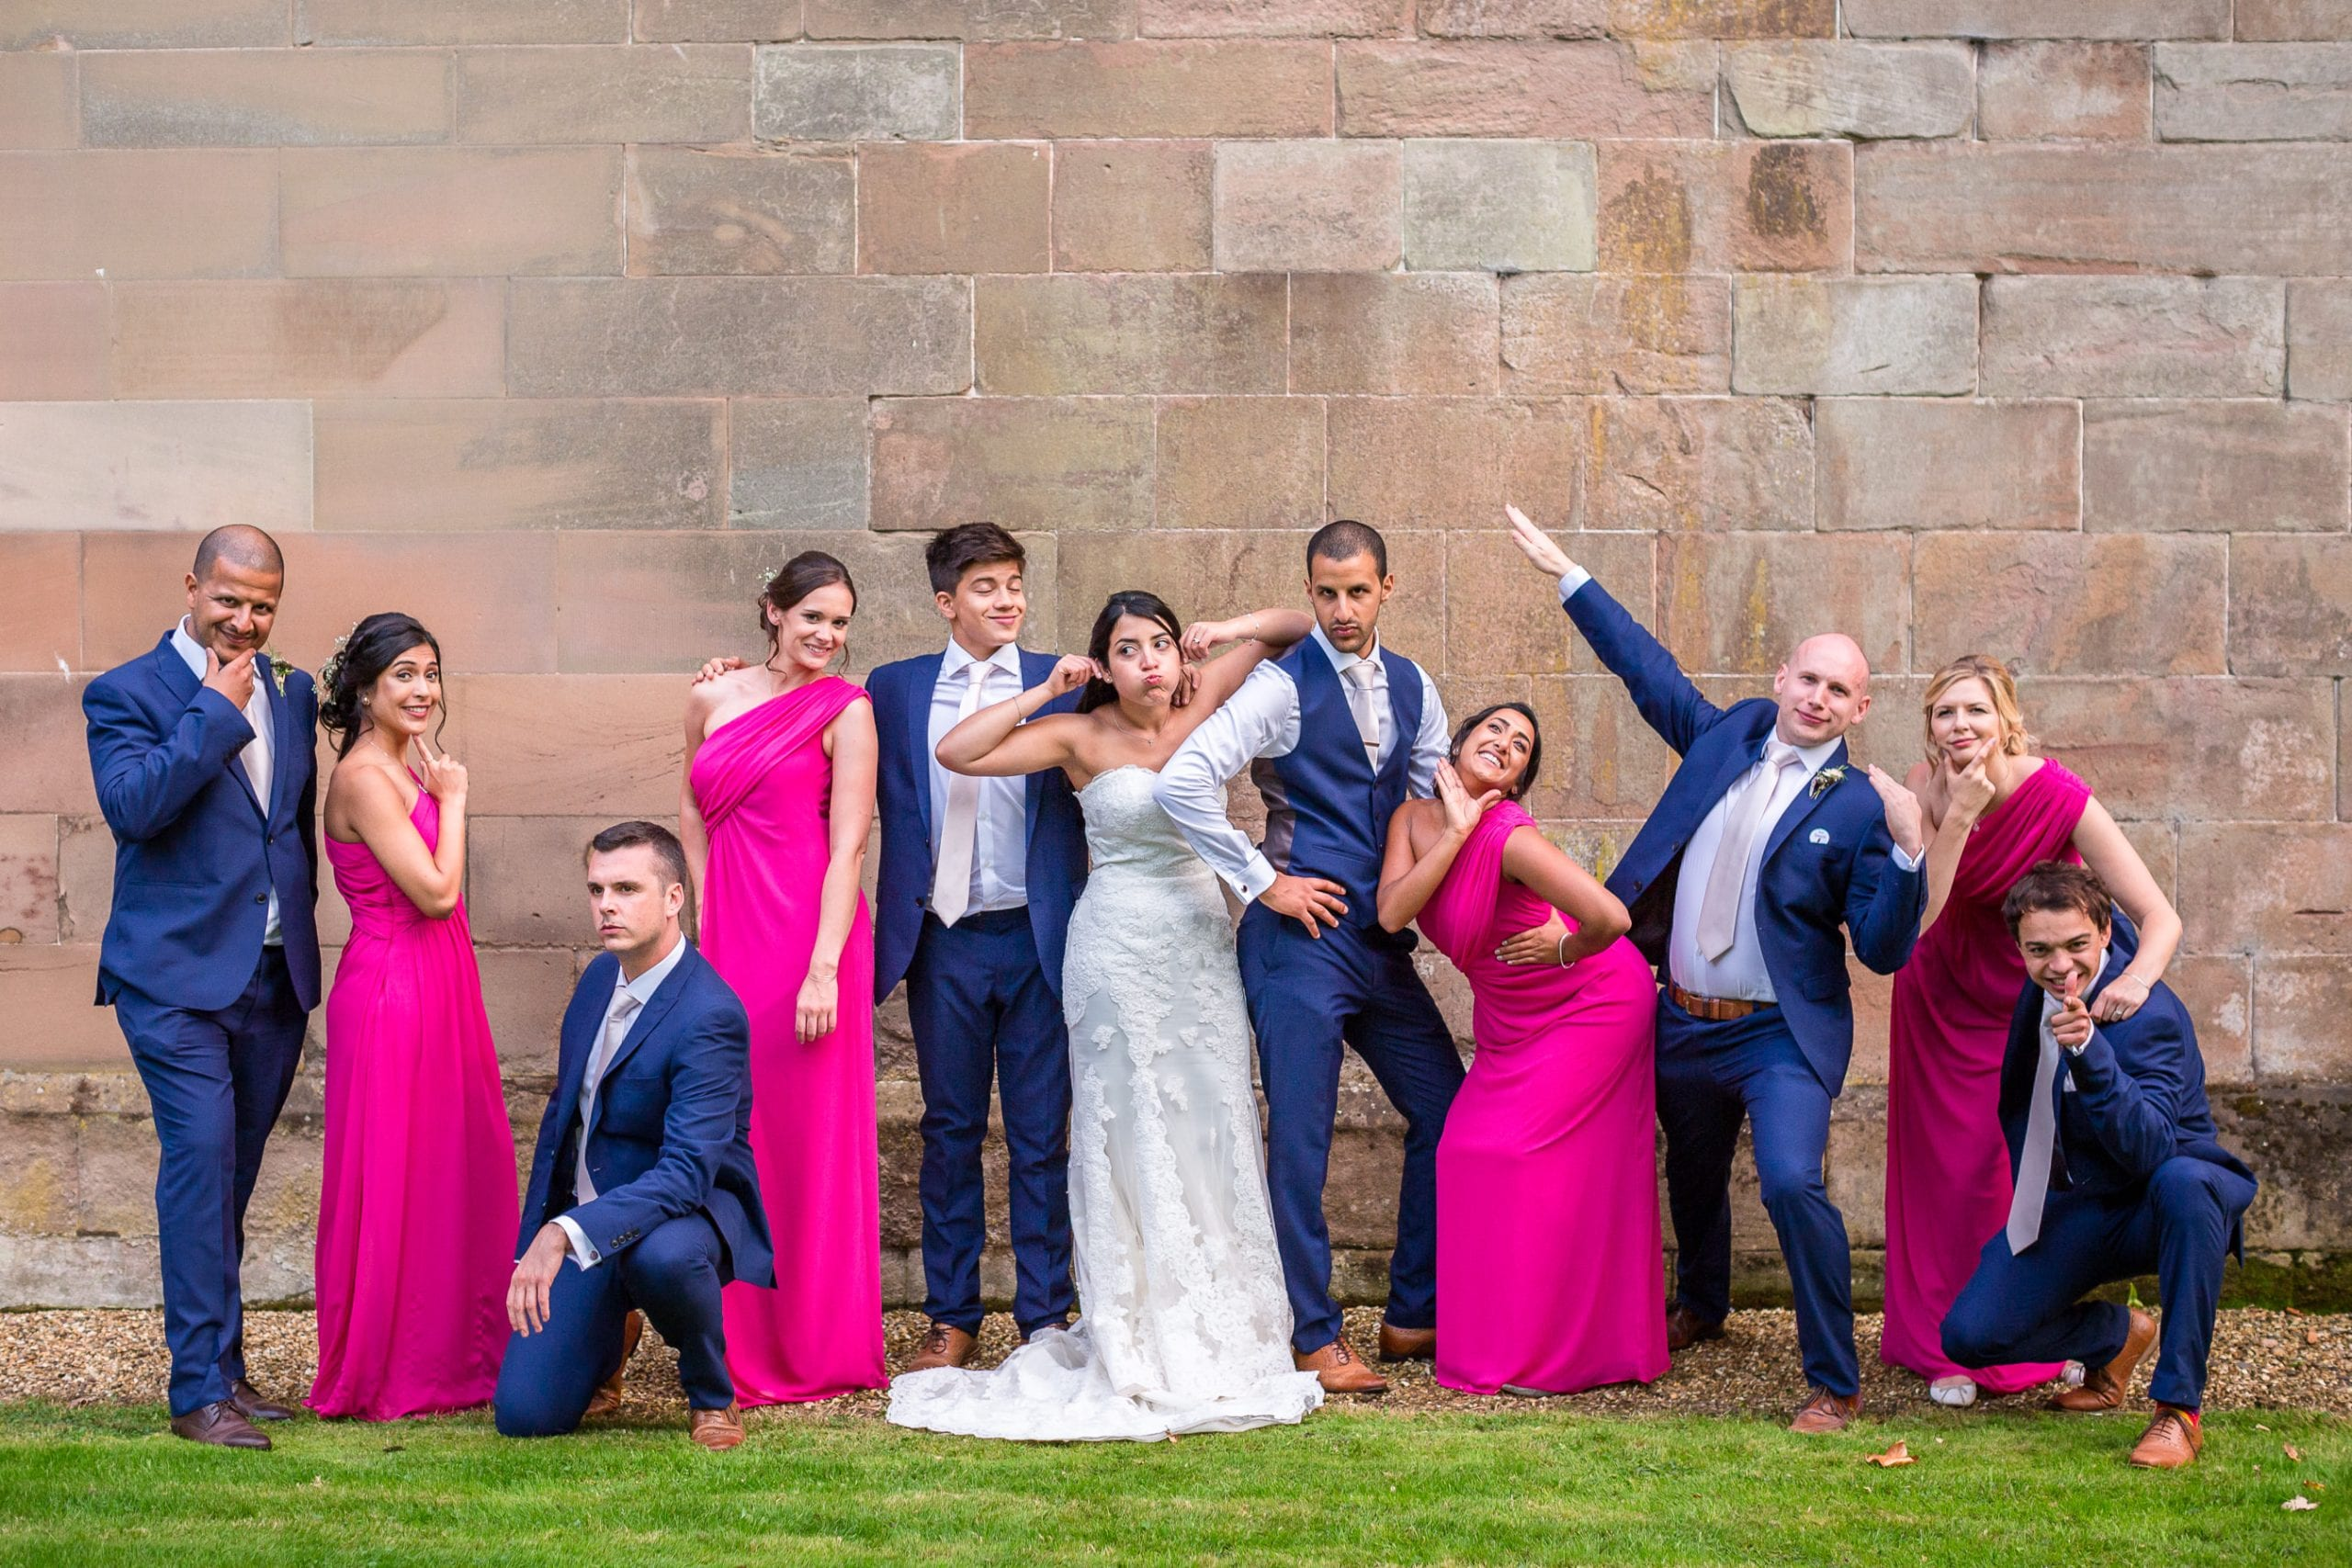 Bridemaids and groomsmen doing silling poses for a group shot at Stoneleigh Abbey in Warwickshire.